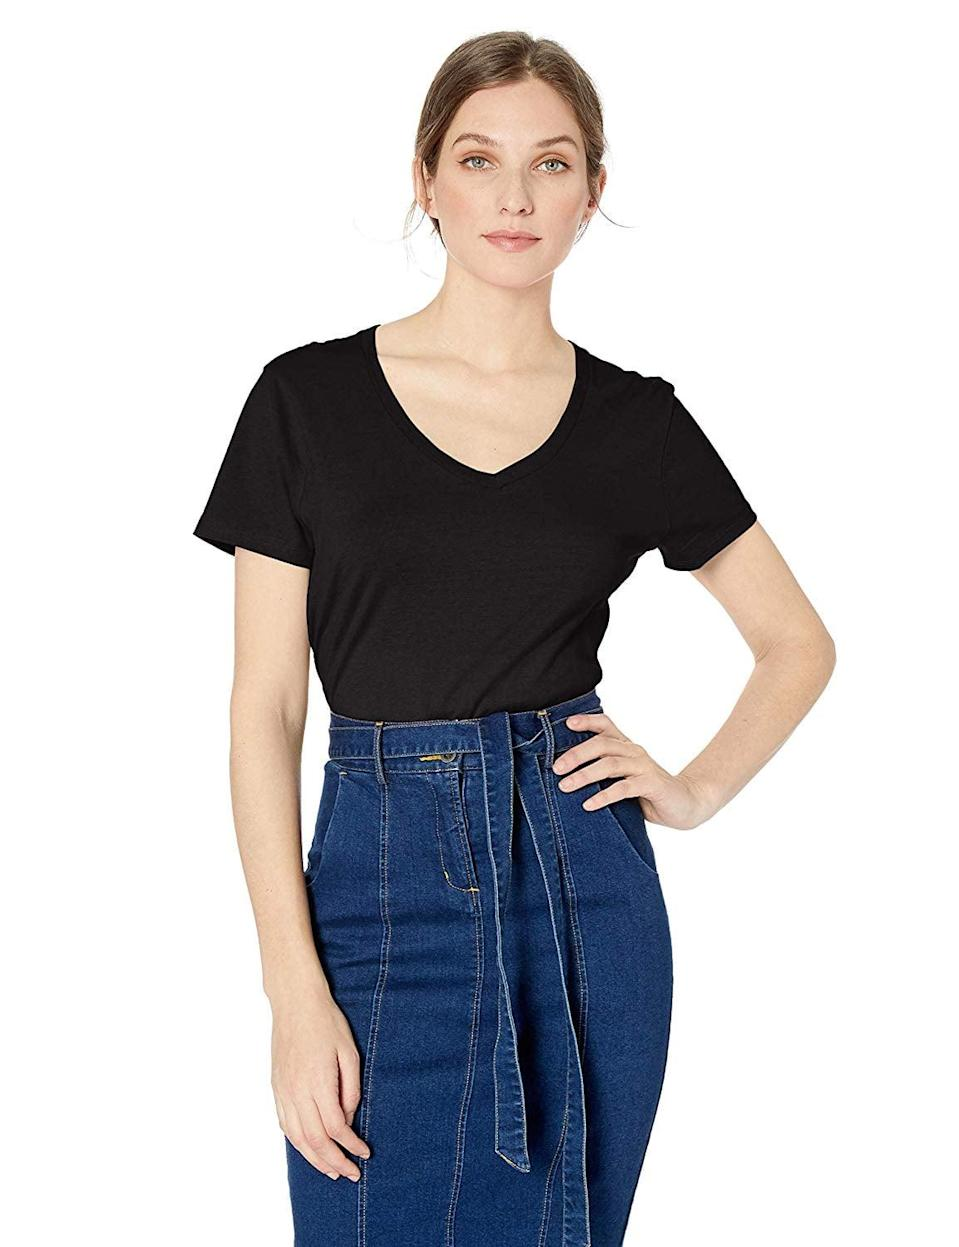 <p>You can't go wrong with this <span>Hanes Nano Premium Cotton V-Neck Tee</span> ($8).</p>